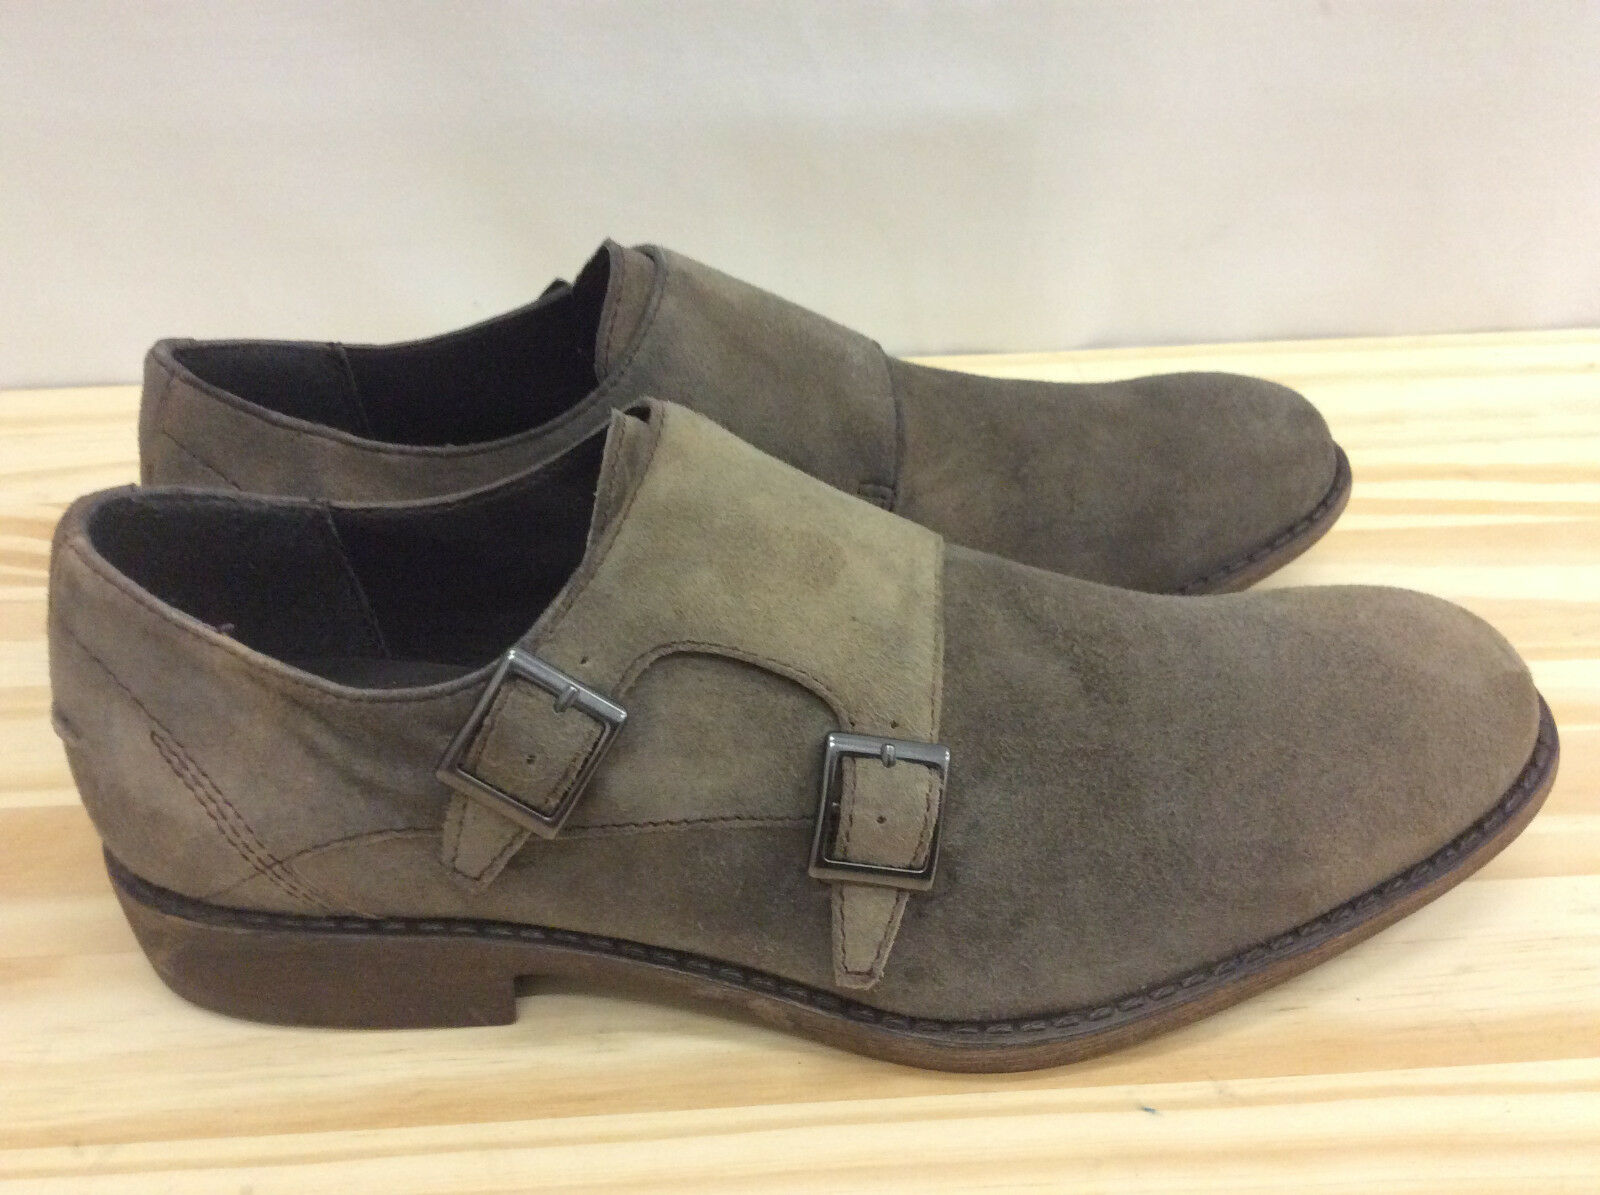 outlet in vendita Kenneth Kenneth Kenneth Cole REACTION Uomo Design 20644 Monk-Strap Loafer, Taupe, 7.5  M  solo per te